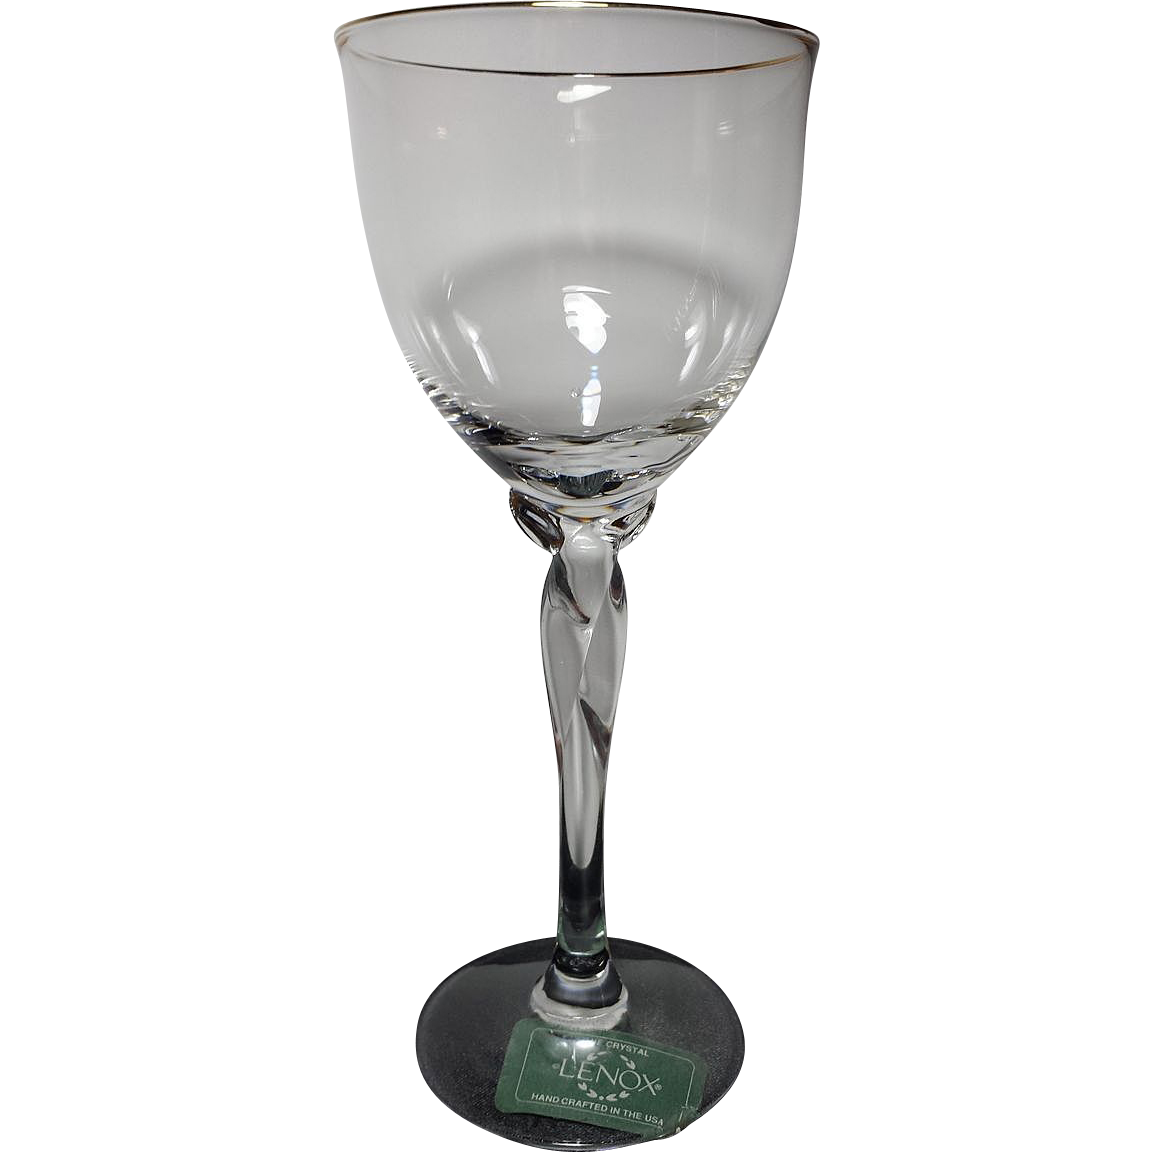 Lenox crystal unity wine glass with gold trim from rubylane sold on ruby lane - Lenox gold rimmed wine glasses ...